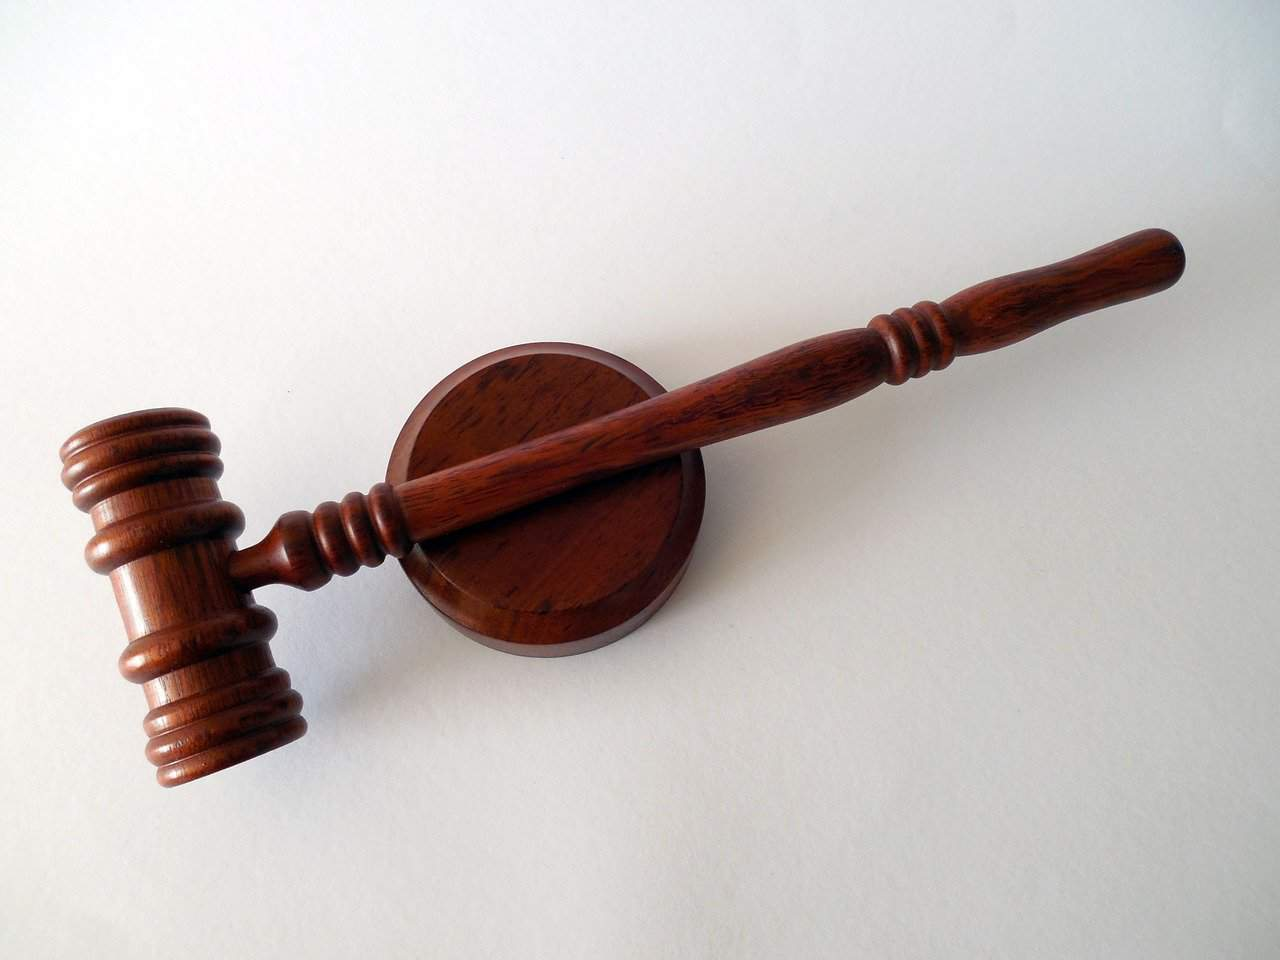 gavel placed on a white surface